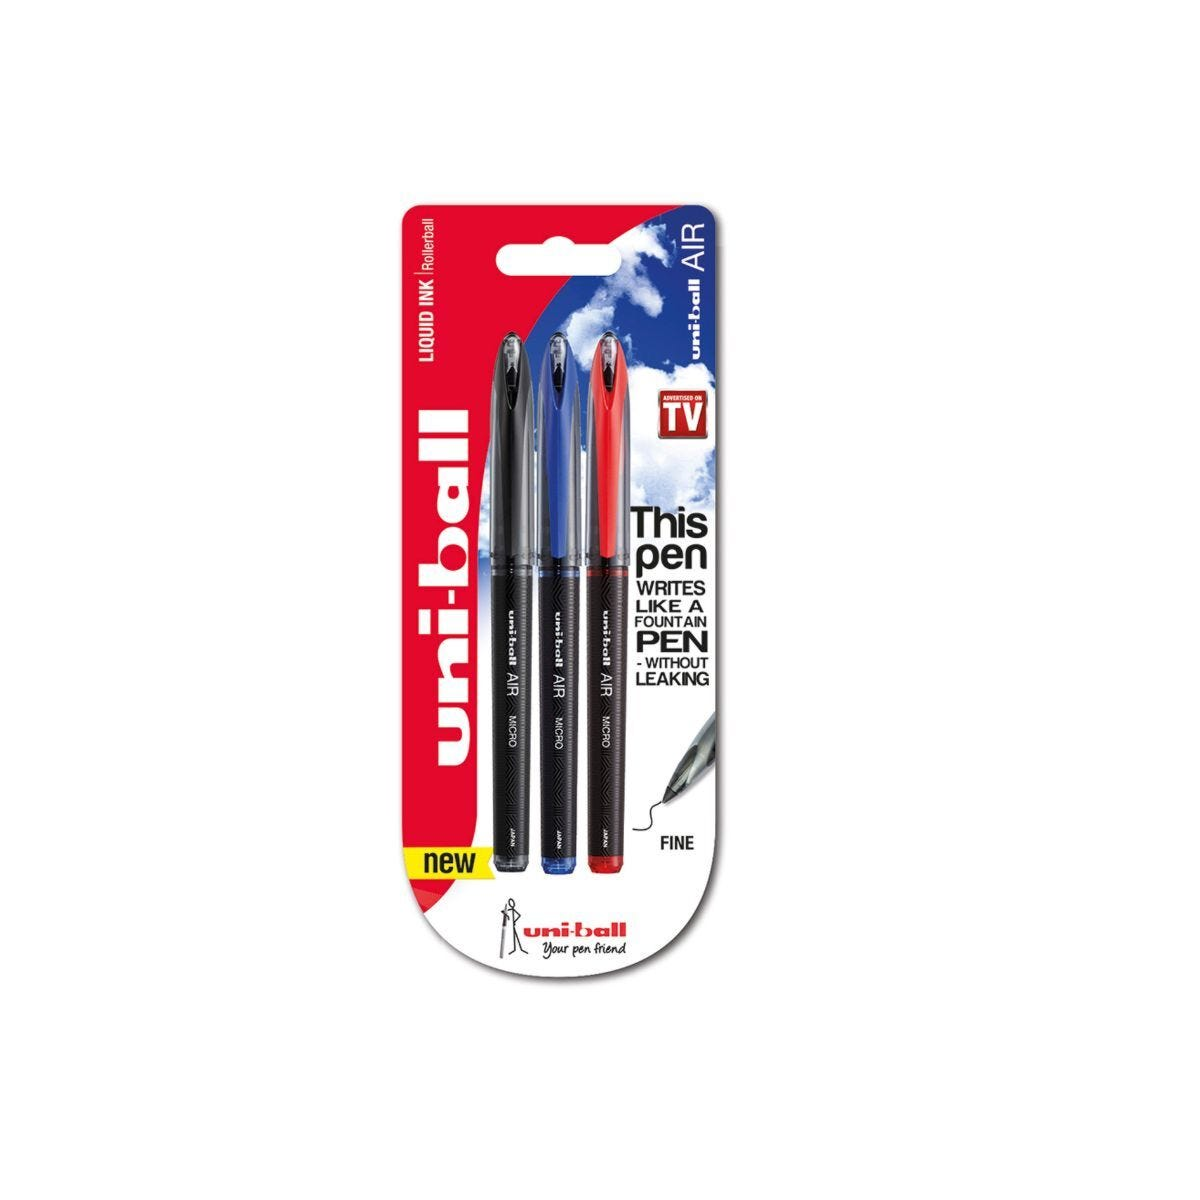 uni-ball Air Rollerball Pen Fine Pack of 12